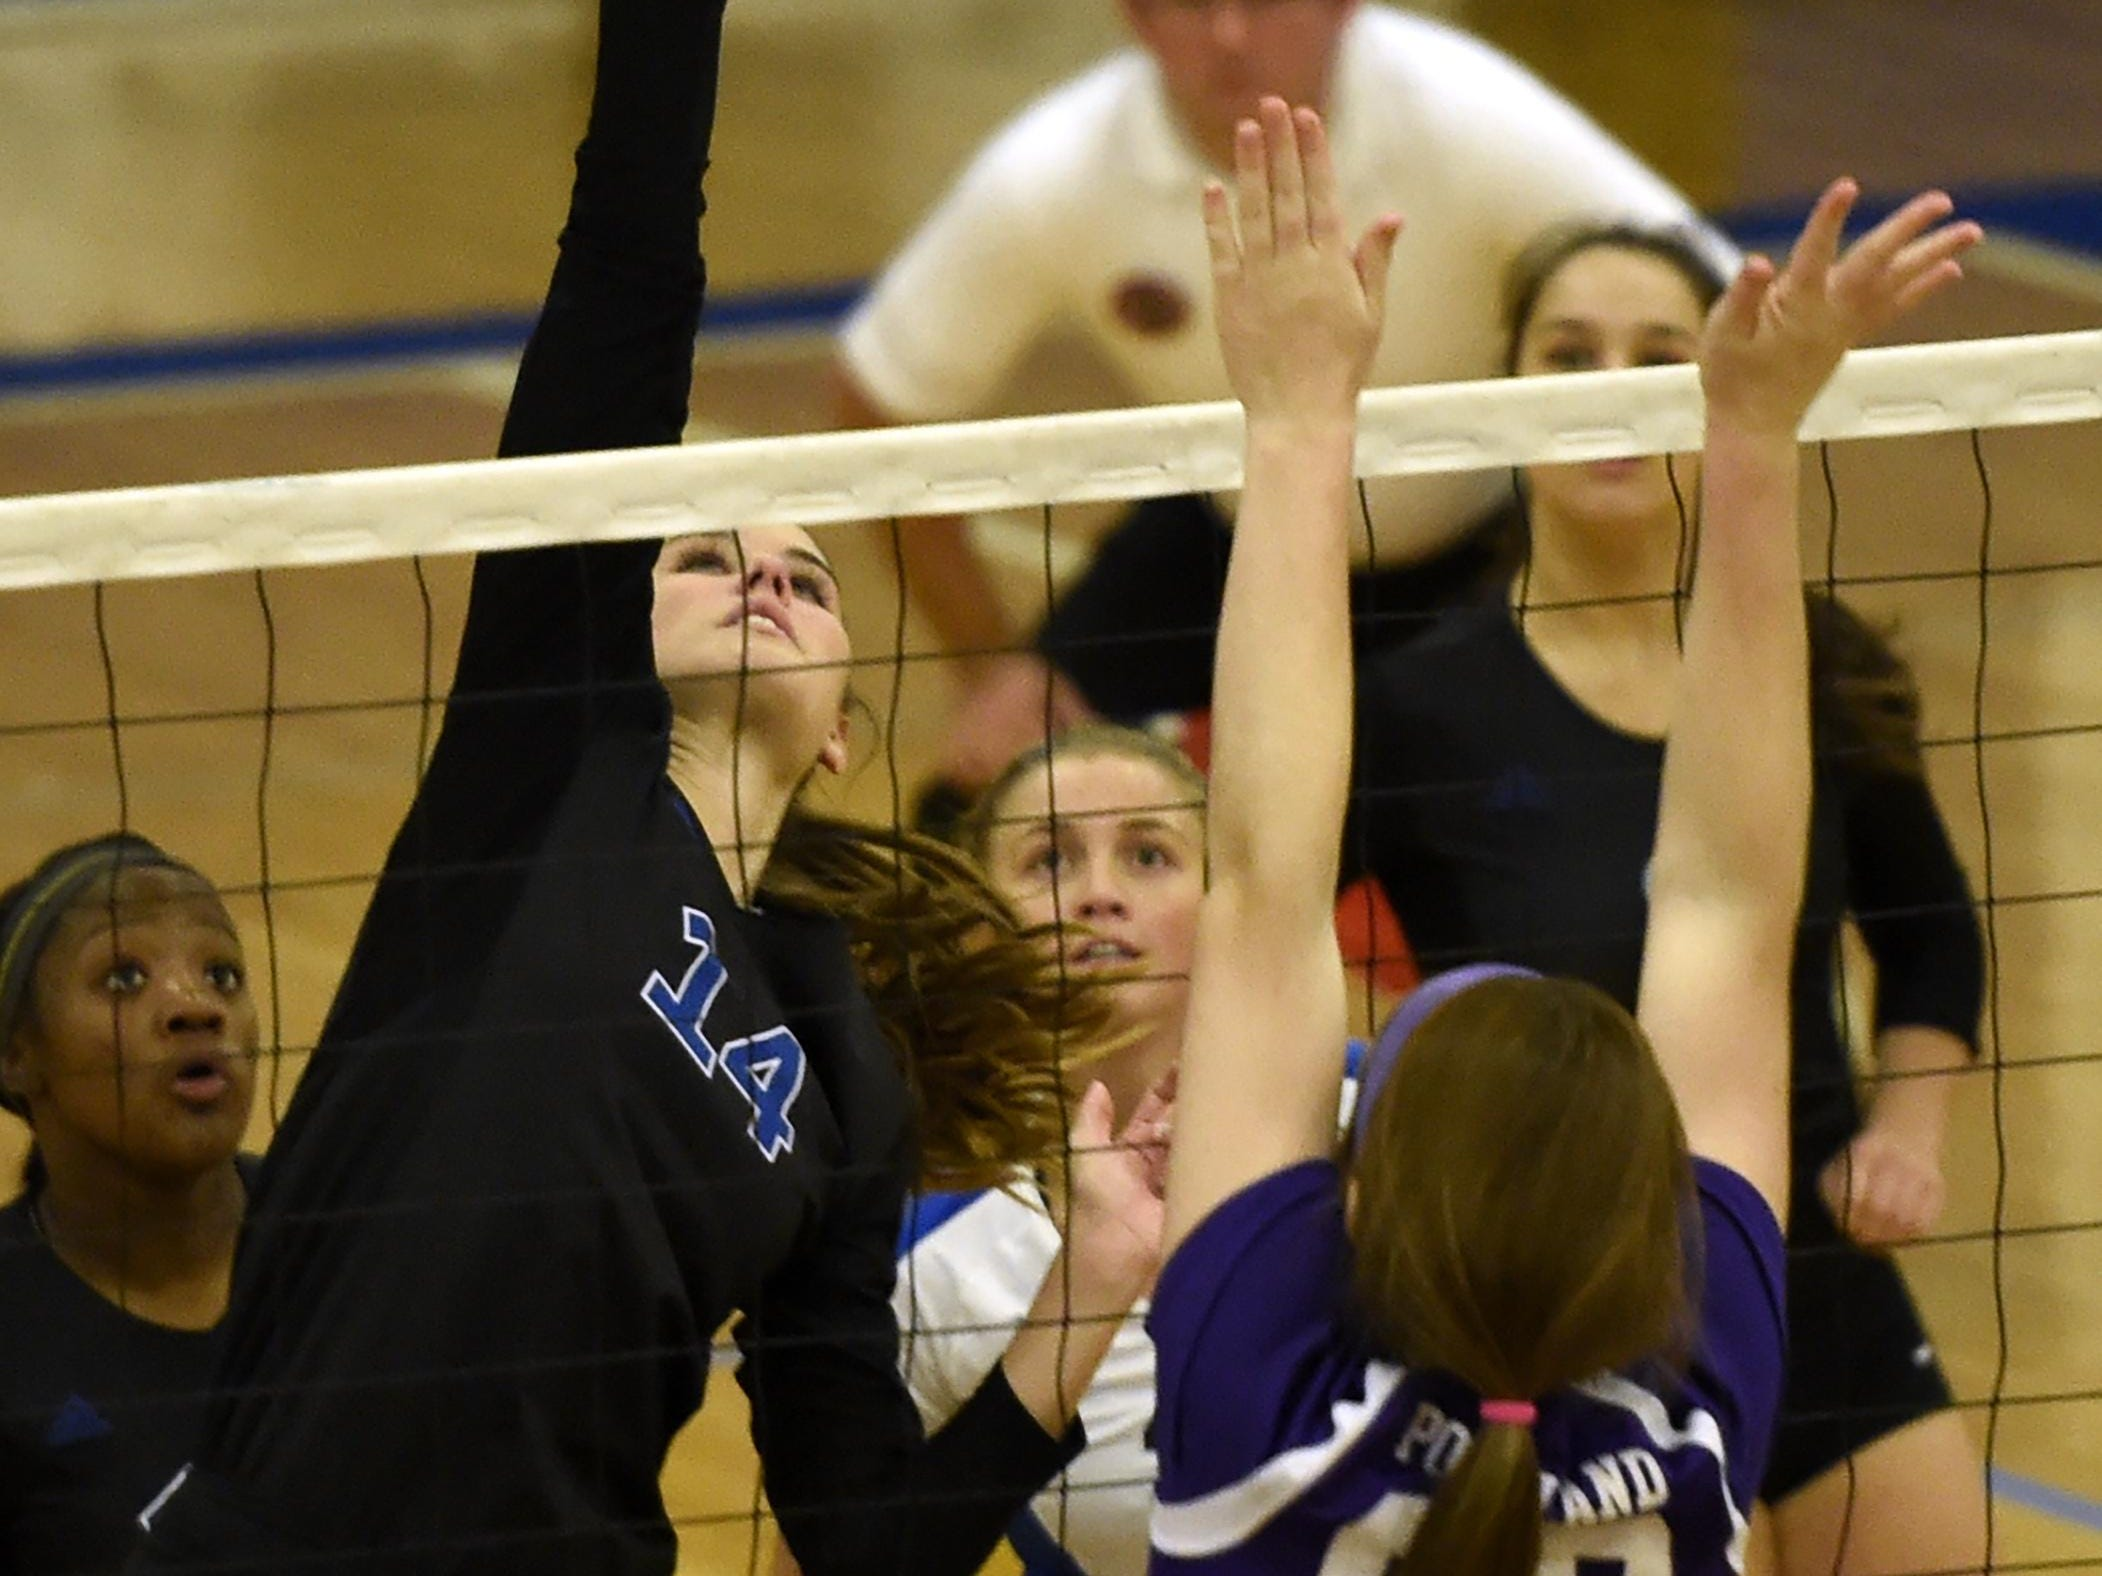 Brentwood's Kaela Massey (14) tips the ball over the head of Portland's Alexia Dorris (10) during their match in the Sub-State Volleyball tournament Thursday Oct. 15, 2015, in Brentwood, Tenn.